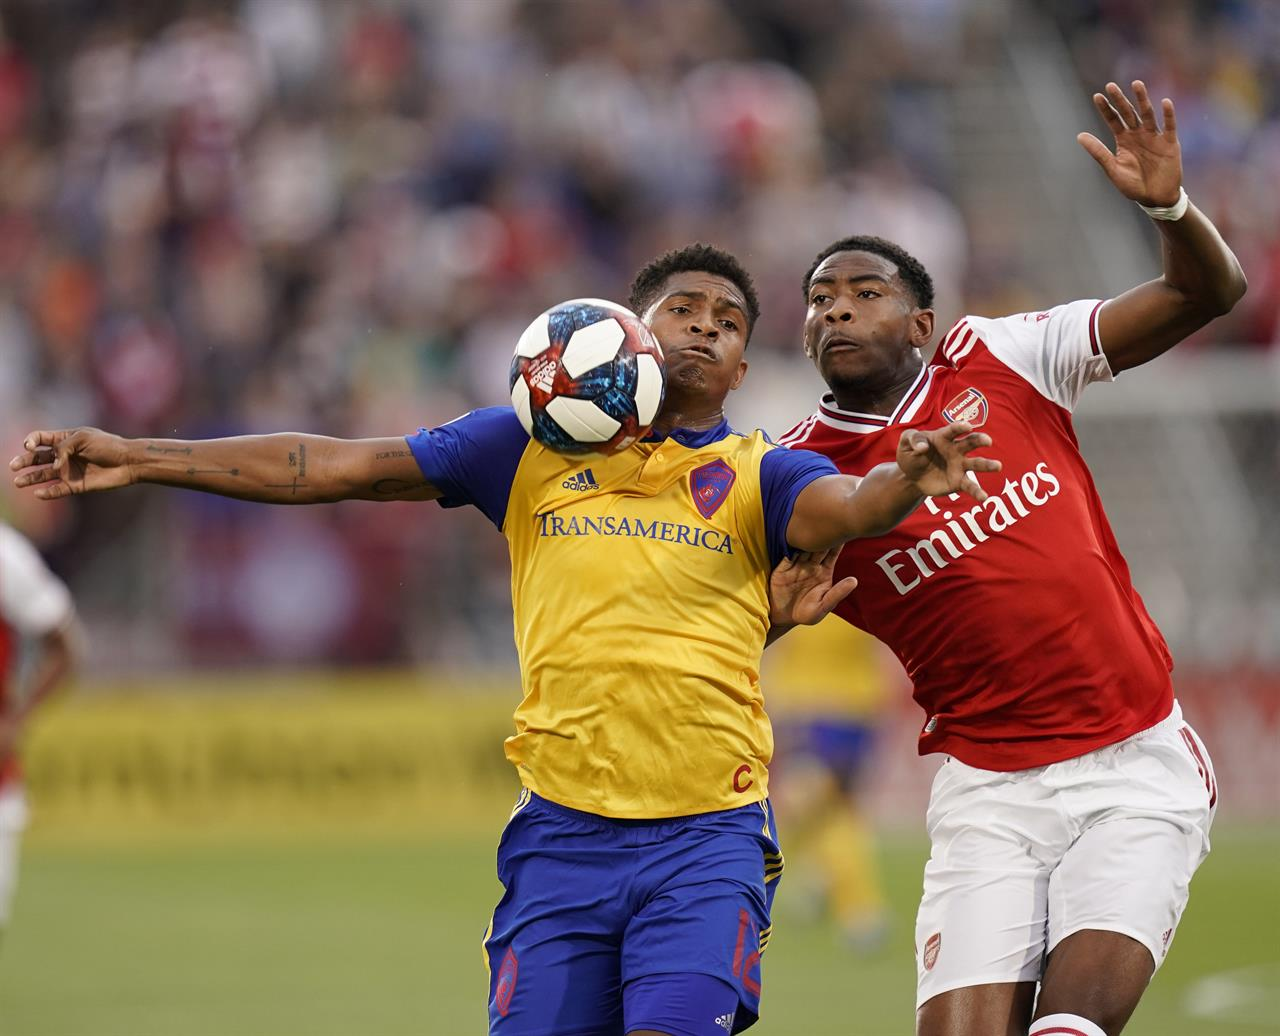 Arsenal tops Rapids 3-0 in friendly match | AM 660 The Answer